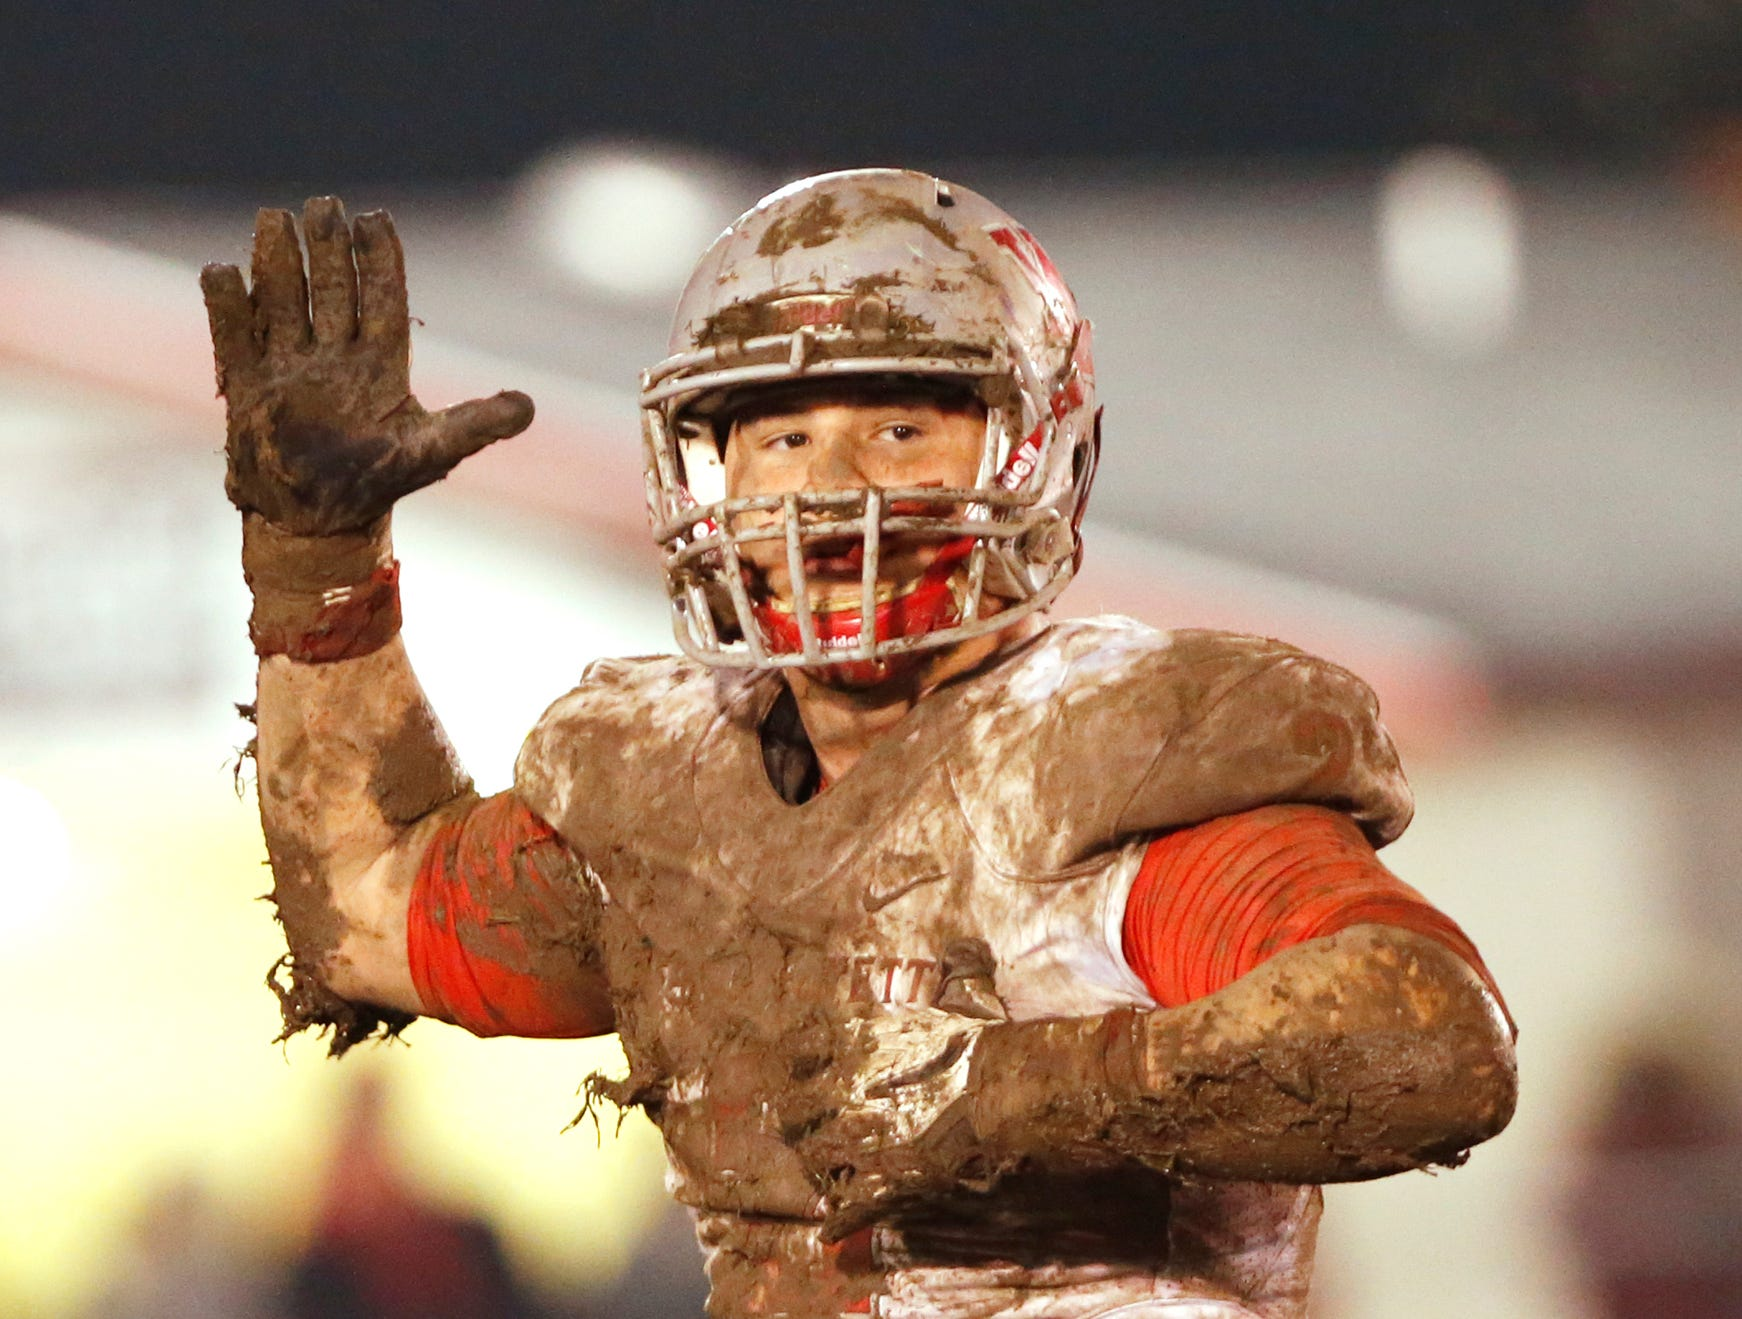 Joey Kidwell reacts after sacking Ft. Wayne Bishop Luers quarterback Norm Knapke Friday, November 16, 2018, in Ft. Wayne. West Lafayette scored 27 unanswered points in the second half to come from behind and defeat Bishop Luers 27-14.